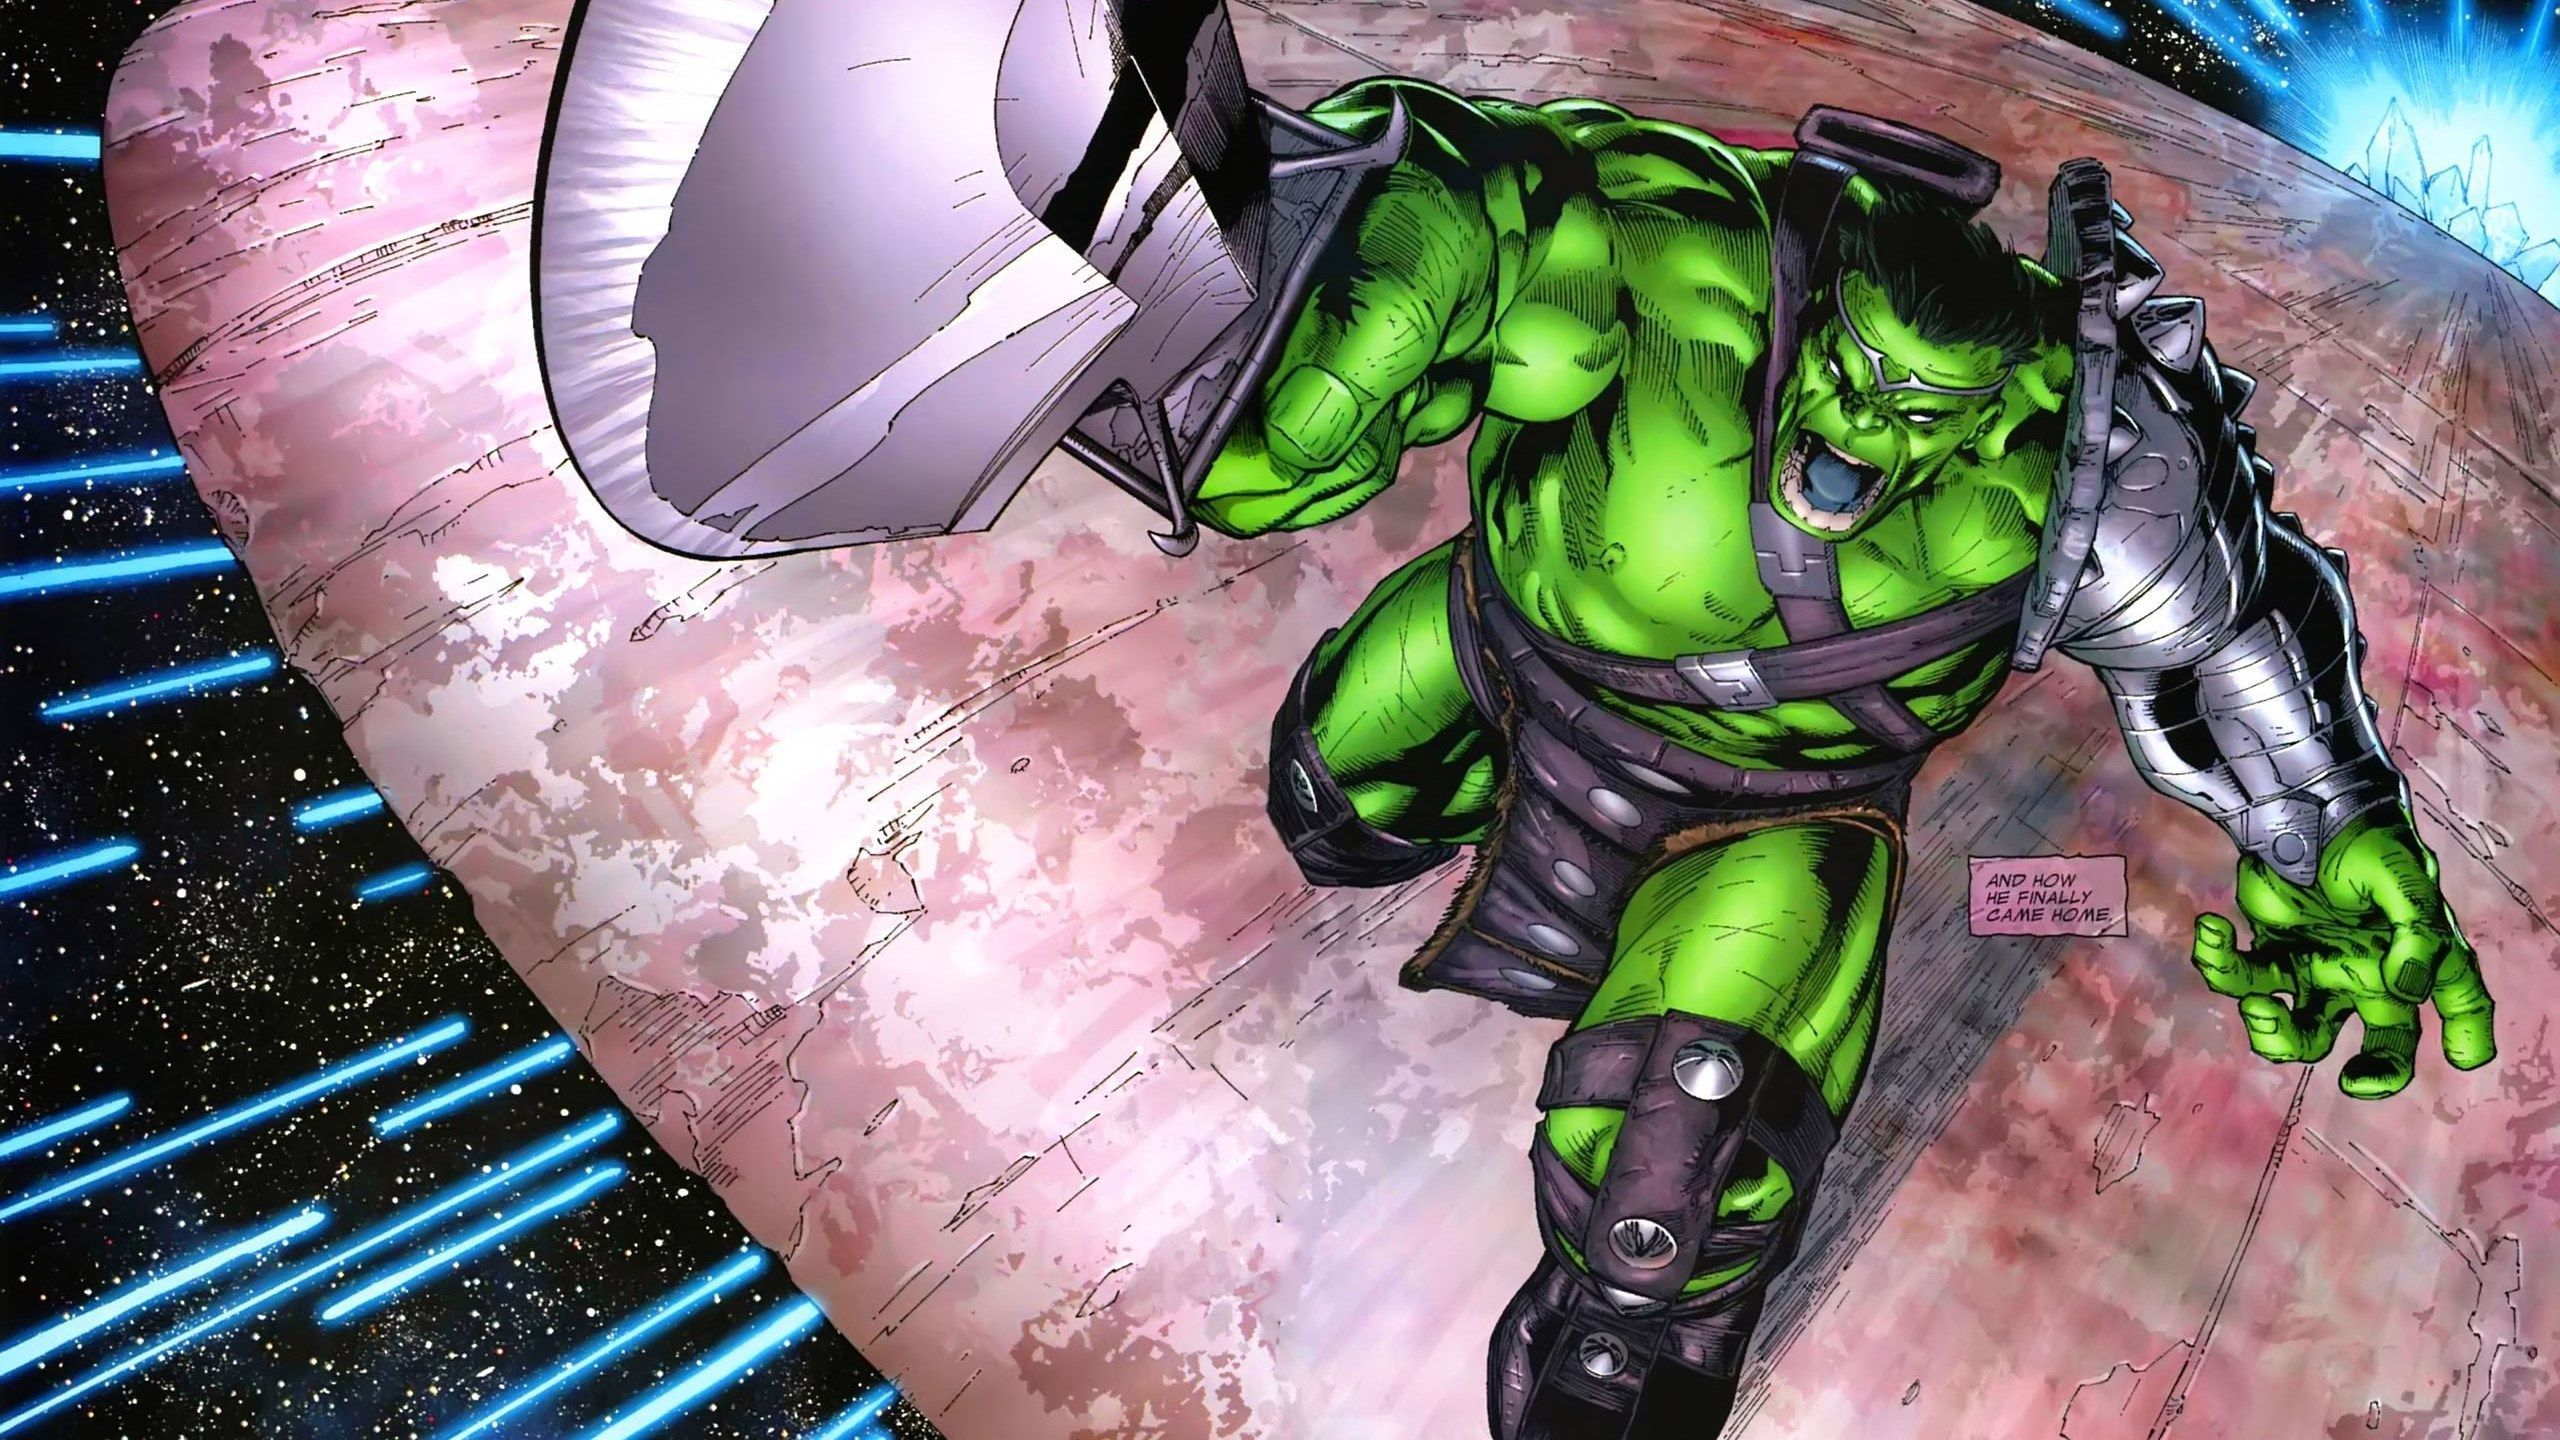 2560x1440 2560x1440 px Pretty world war hulk wallpaper by Teddy Nail for ...